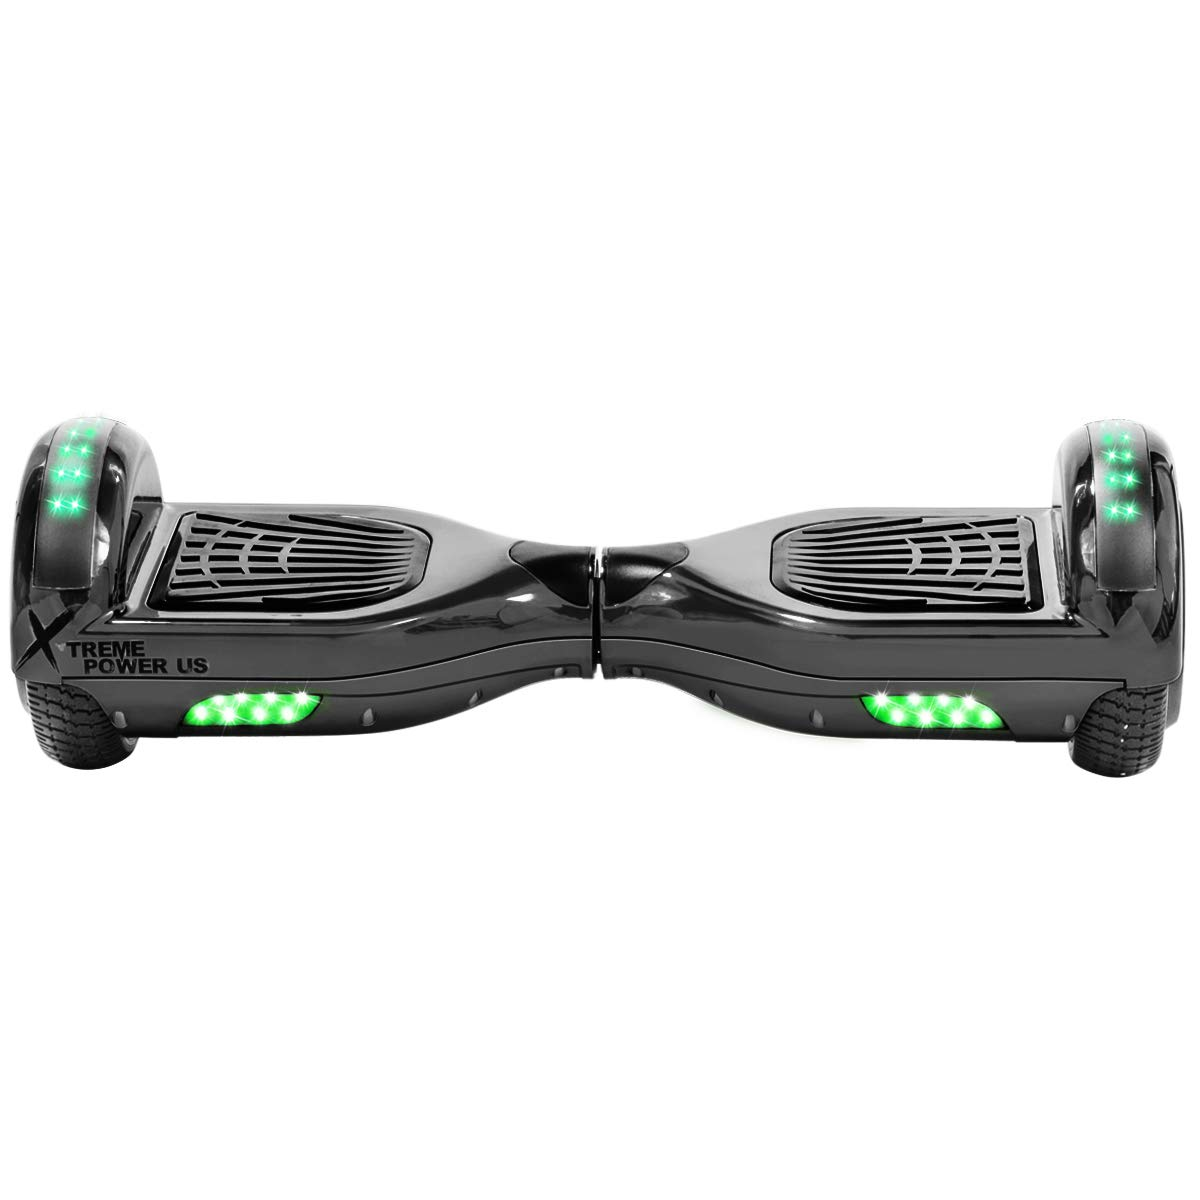 XtremepowerUS Self Balancing Scooter Hoverboard UL2272 Certified, Wireless Speaker and LED Light